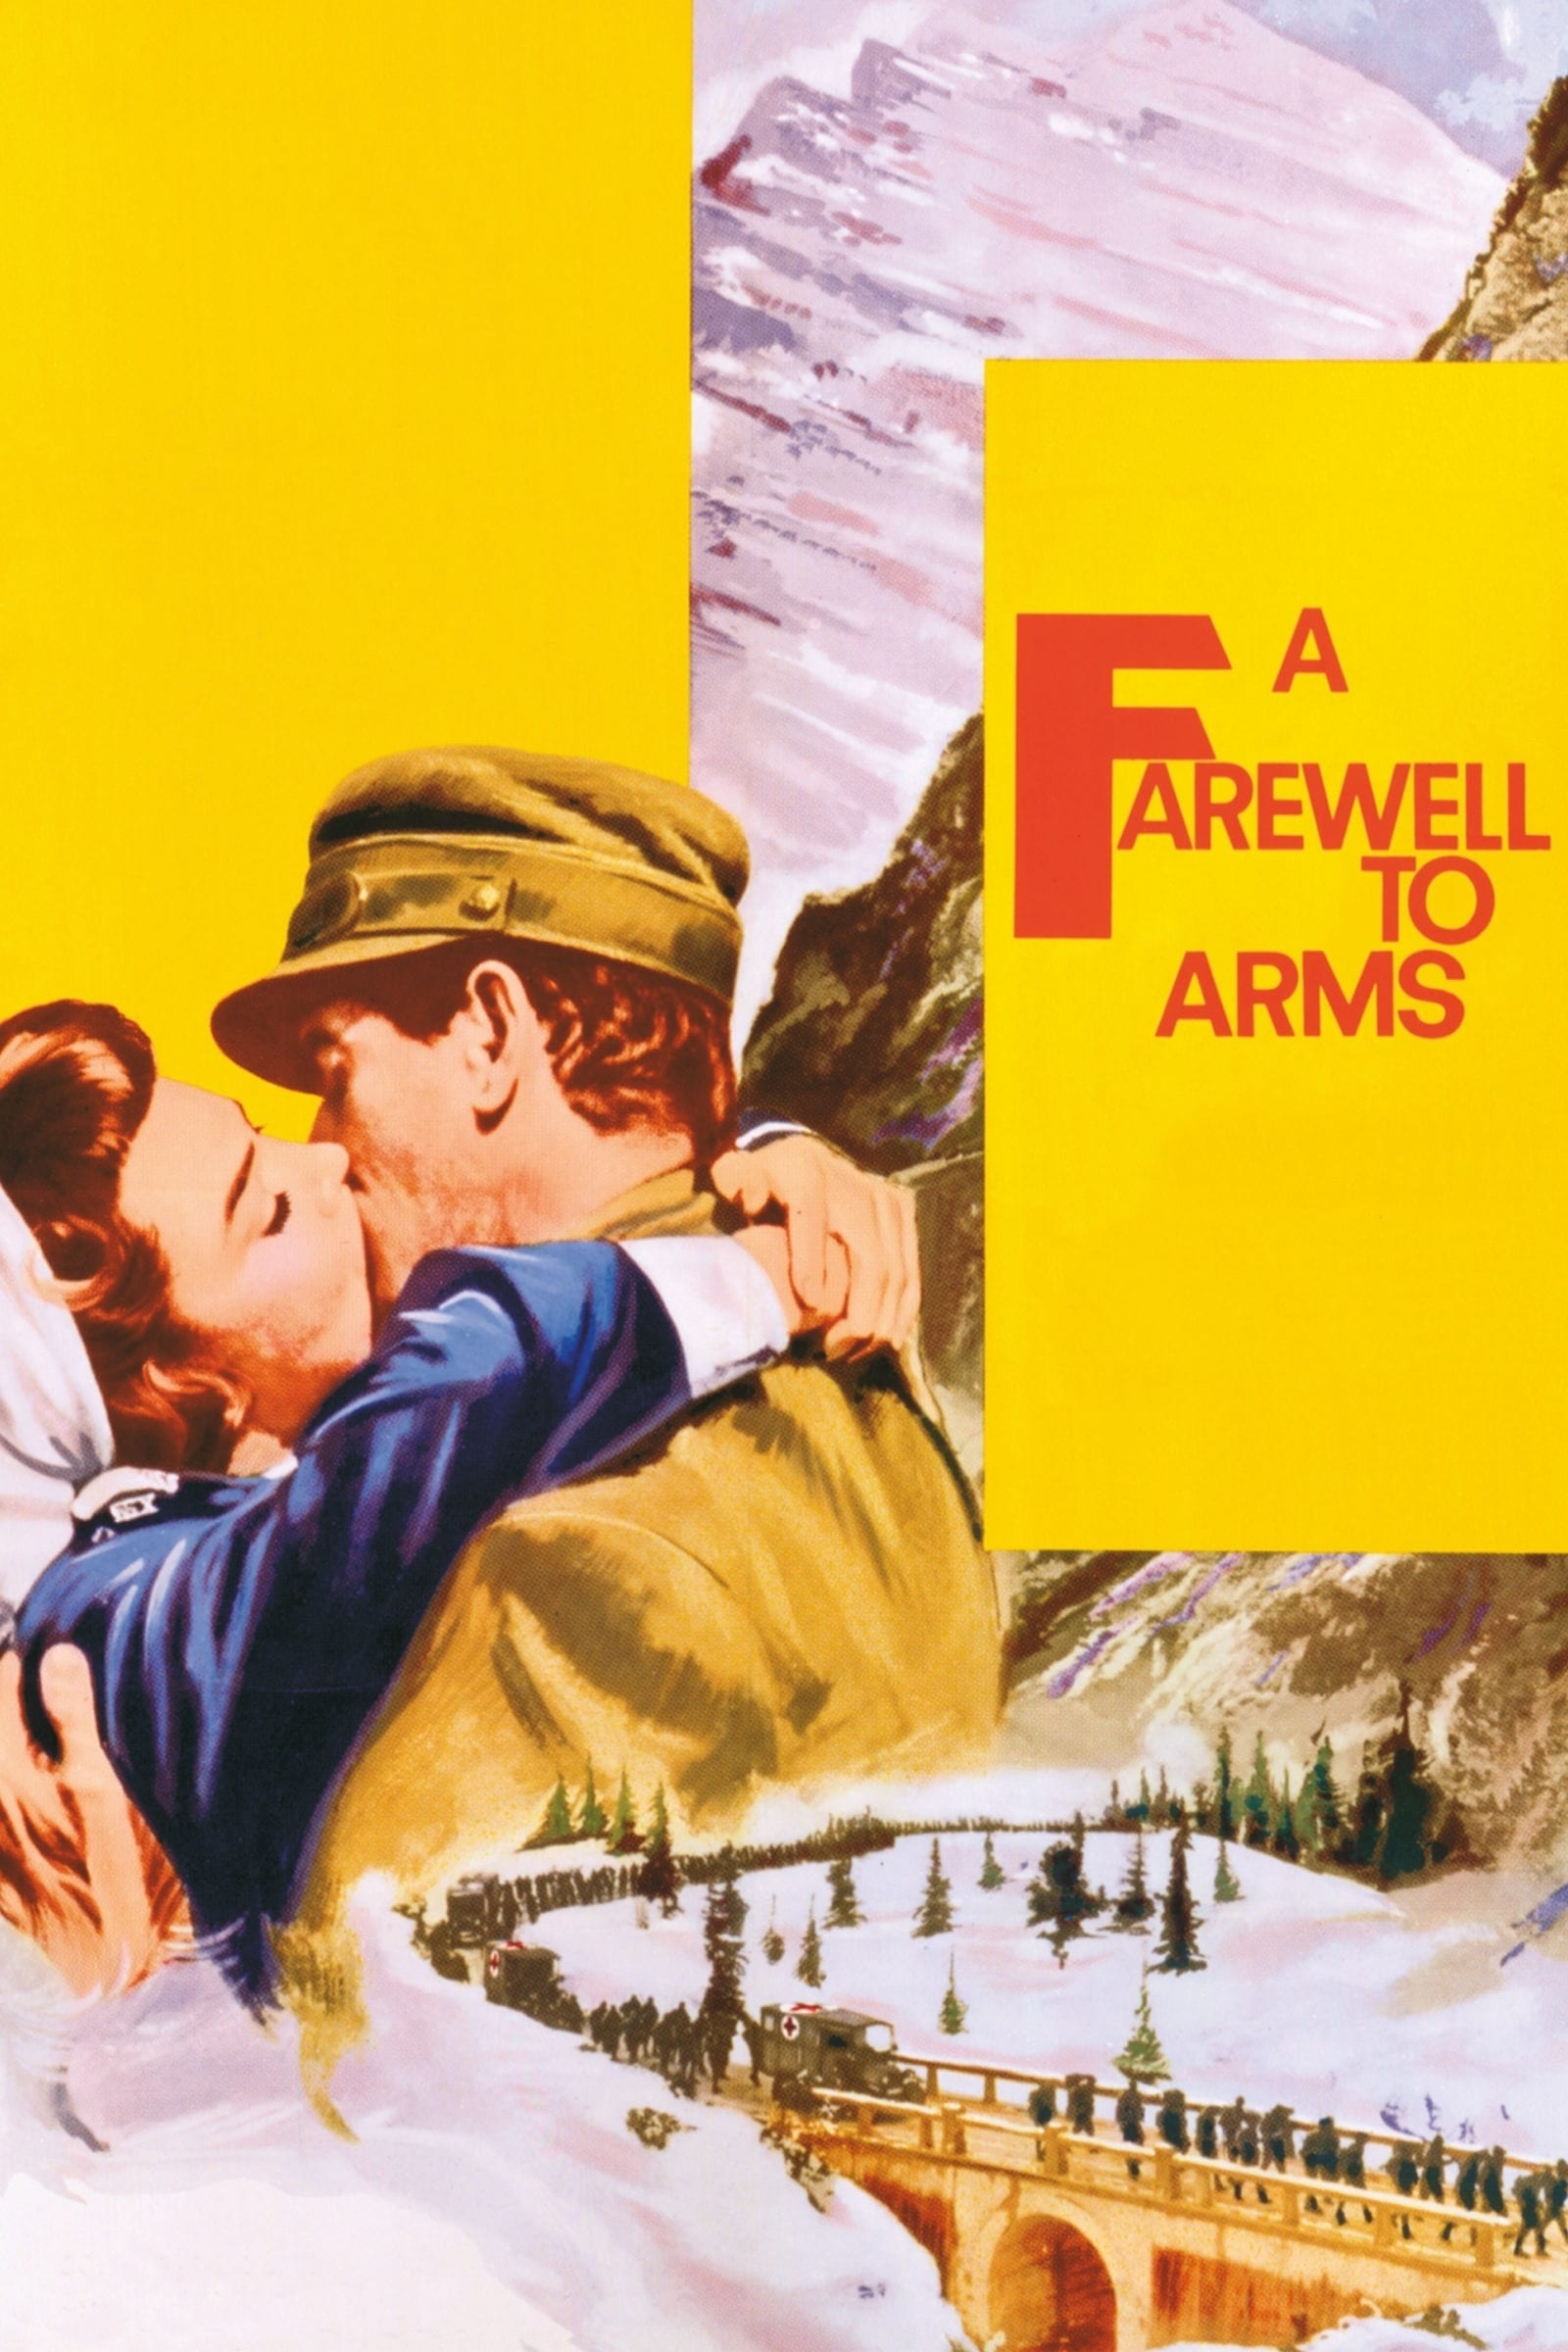 love in a farewell to arms A farewell to arms by ernest hemingway mr hickerson's english 10 honors this includes characters and settings of each of the books.